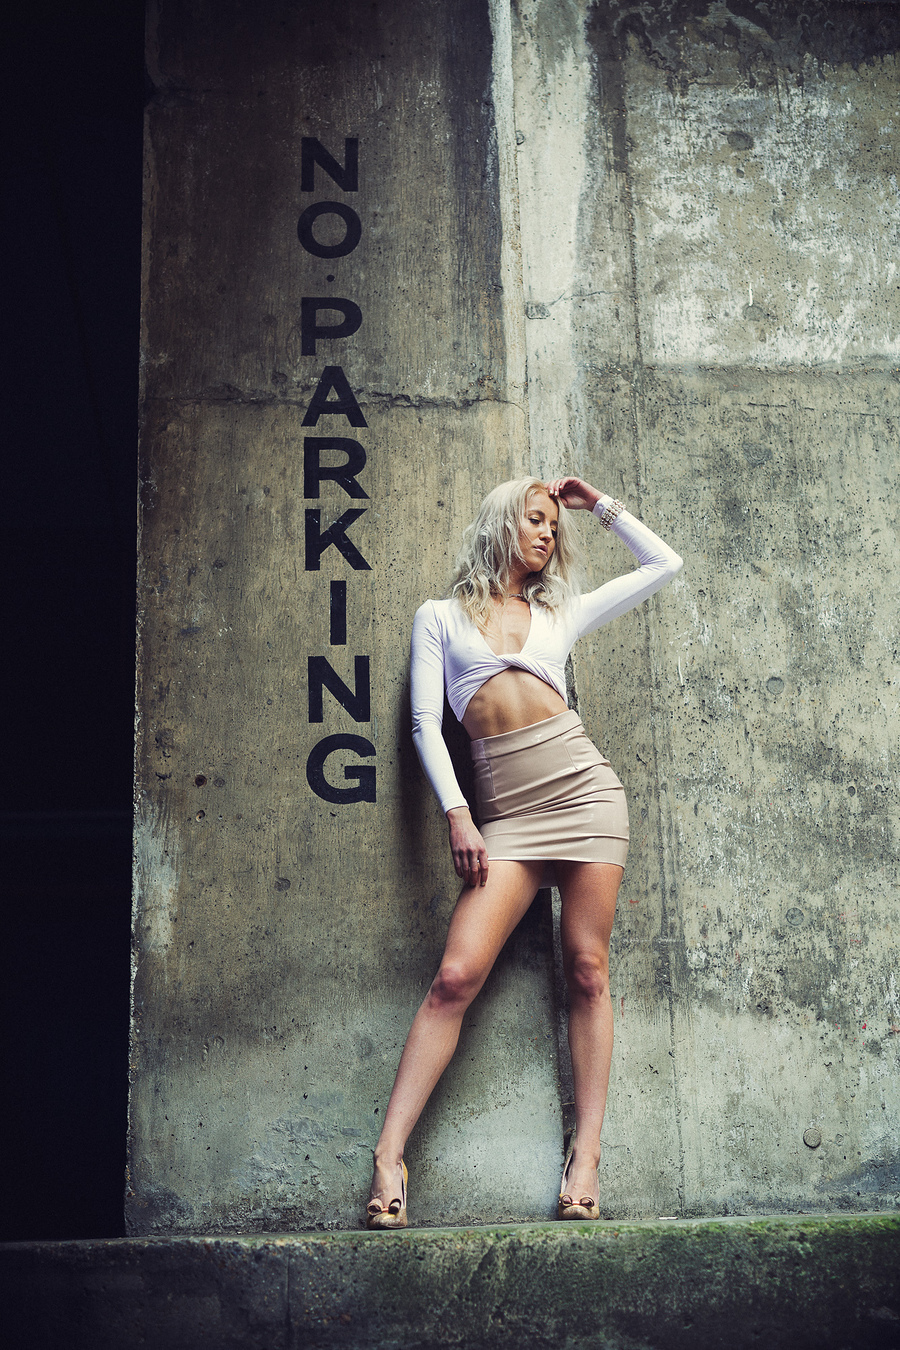 No Parking / Photography by DerelictHeart, Model Missrsmith / Uploaded 23rd April 2017 @ 09:25 AM